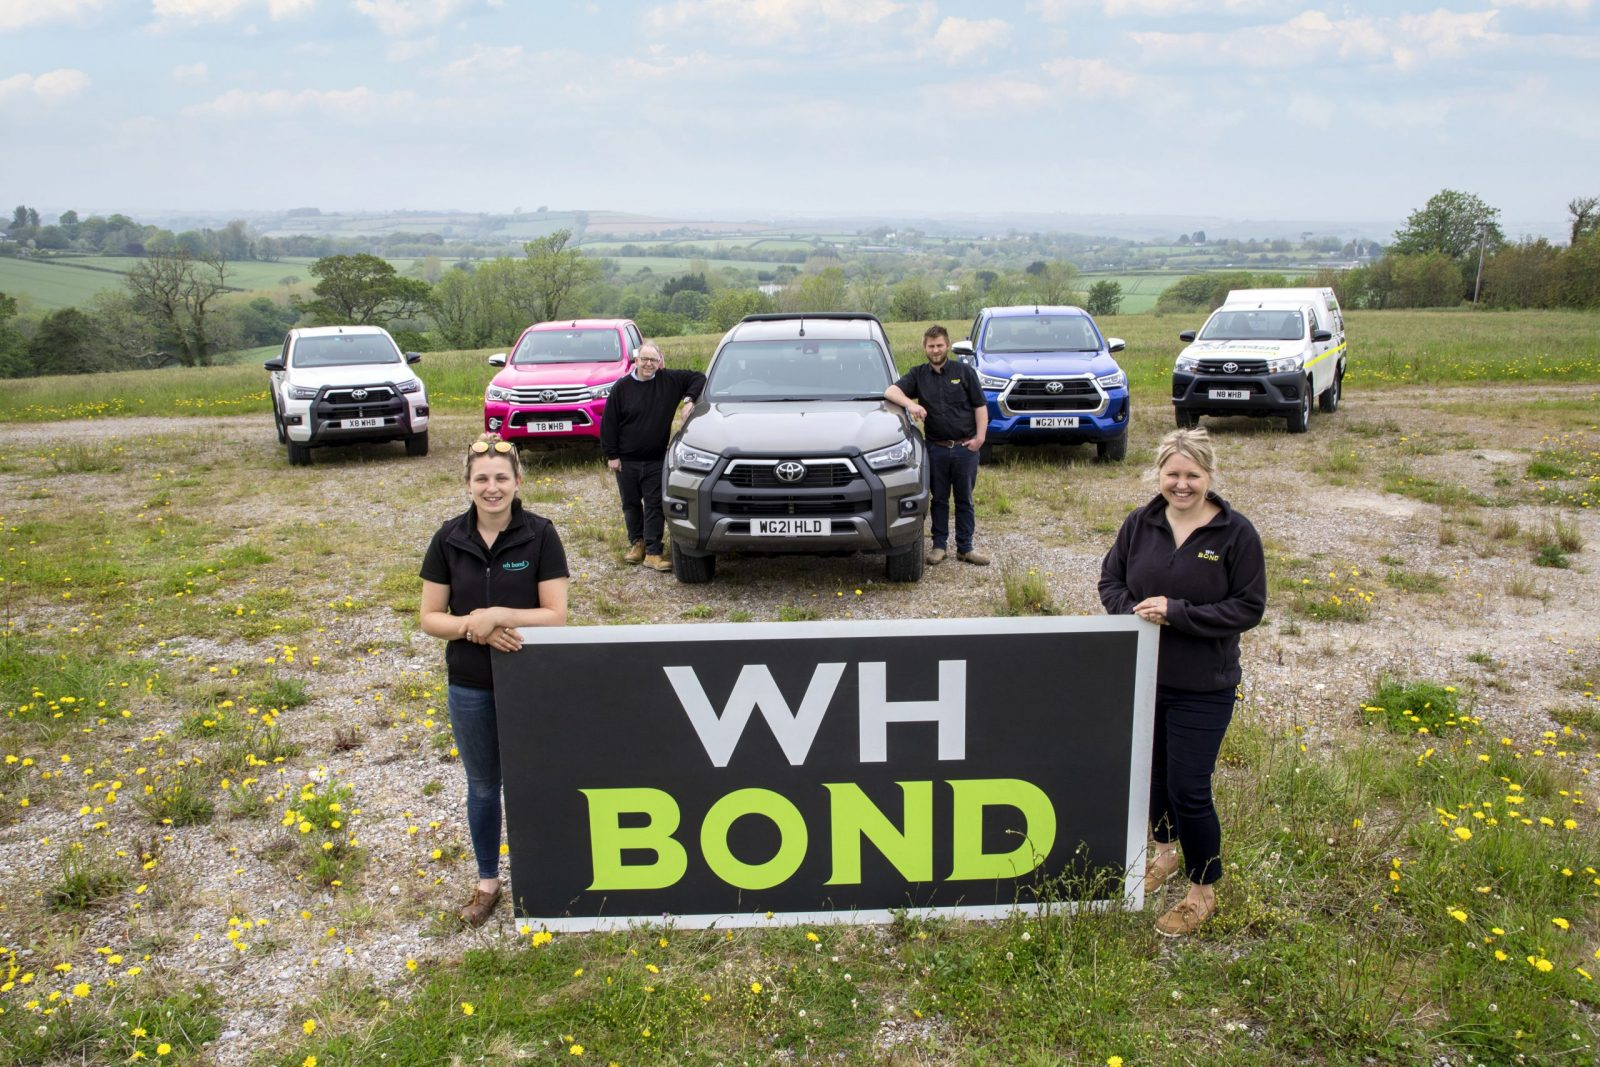 WH Bond and Sons Hilux